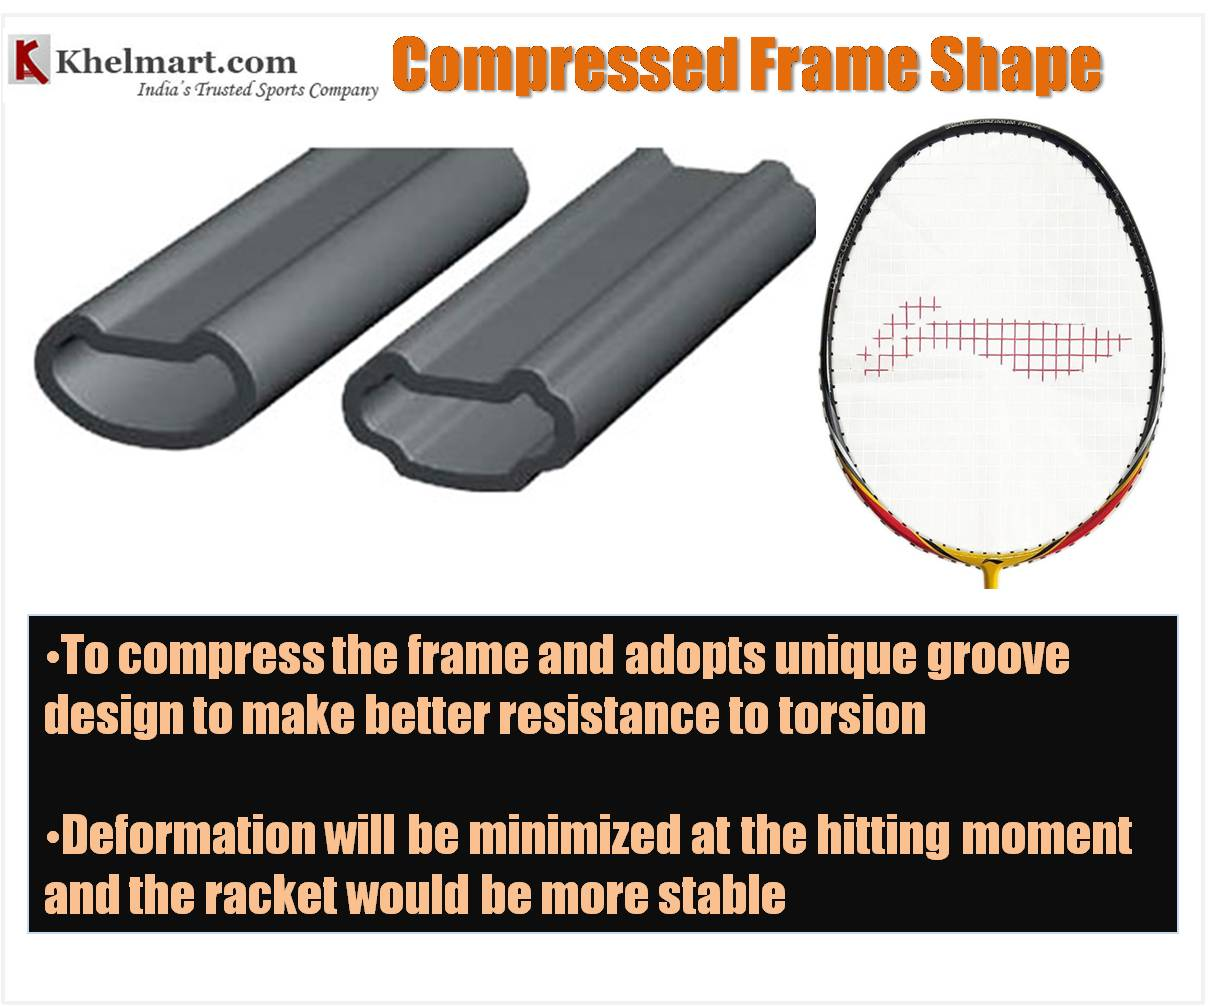 LI_Ling_Badminton_Rackets_Technology_Compressed_Frame_Shape.jpg